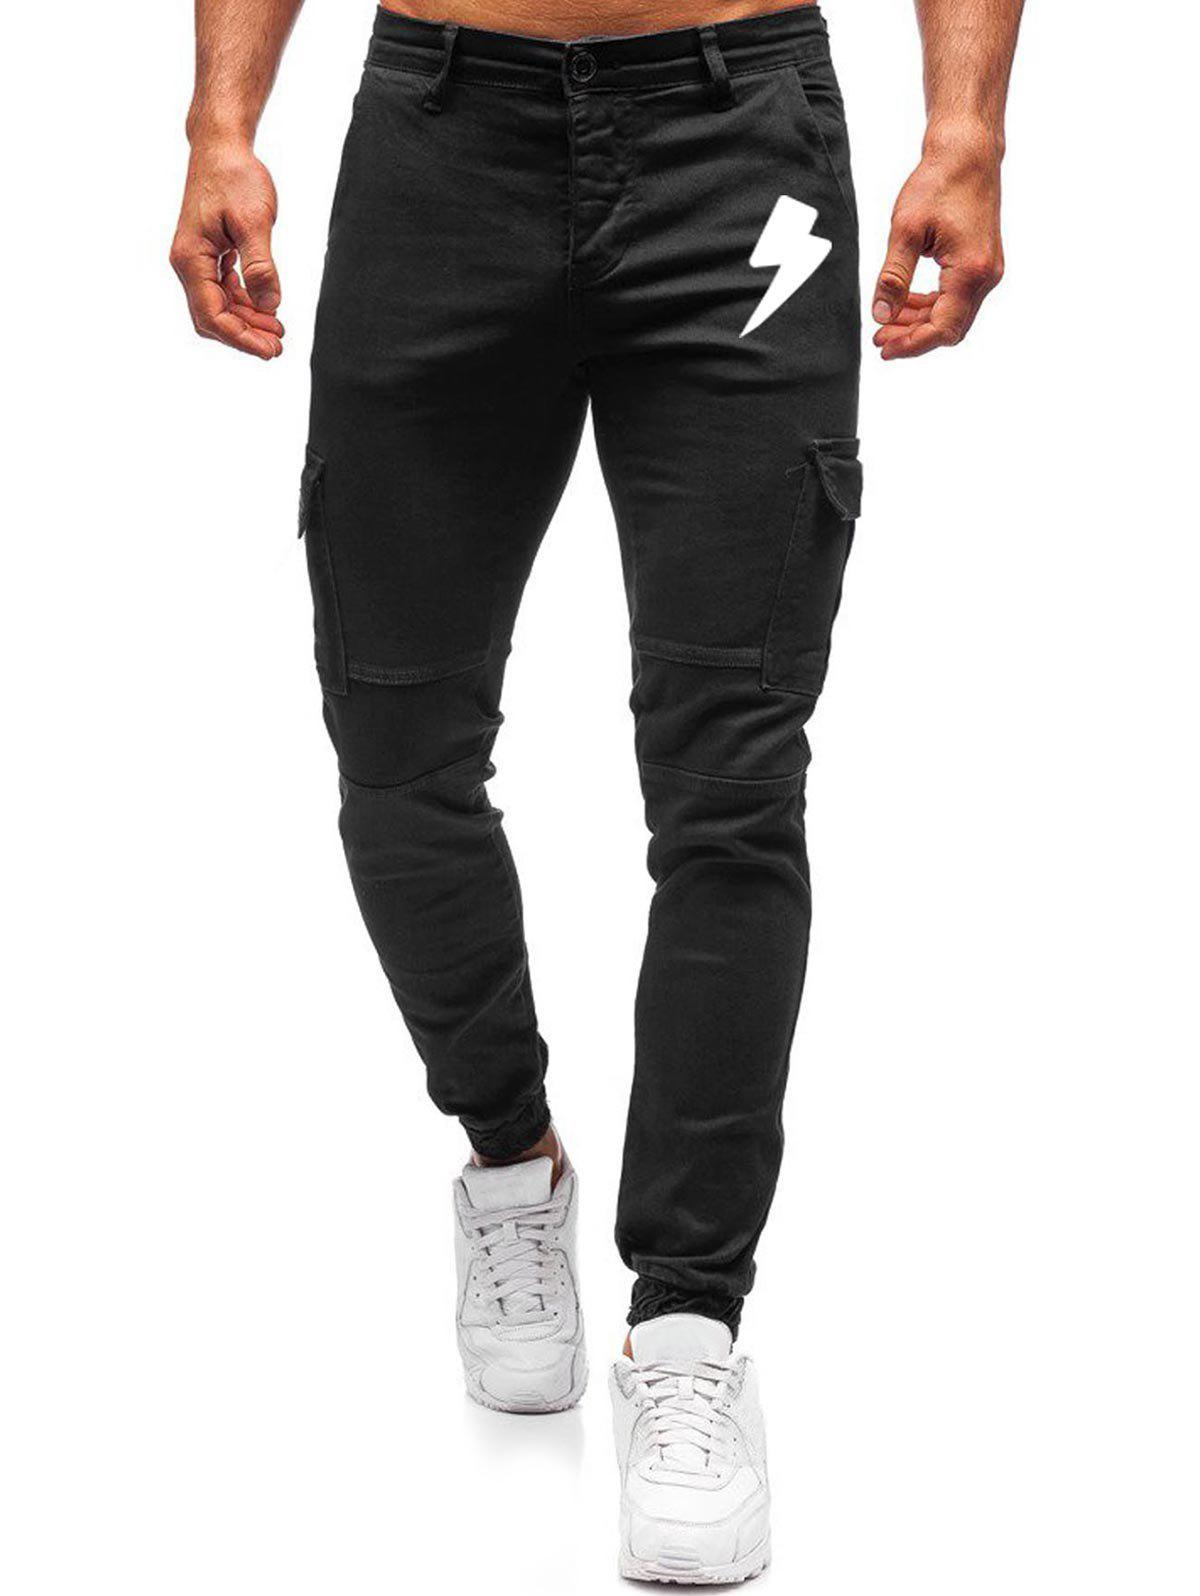 Online Lightning Pattern Zip Fly Casual Pants